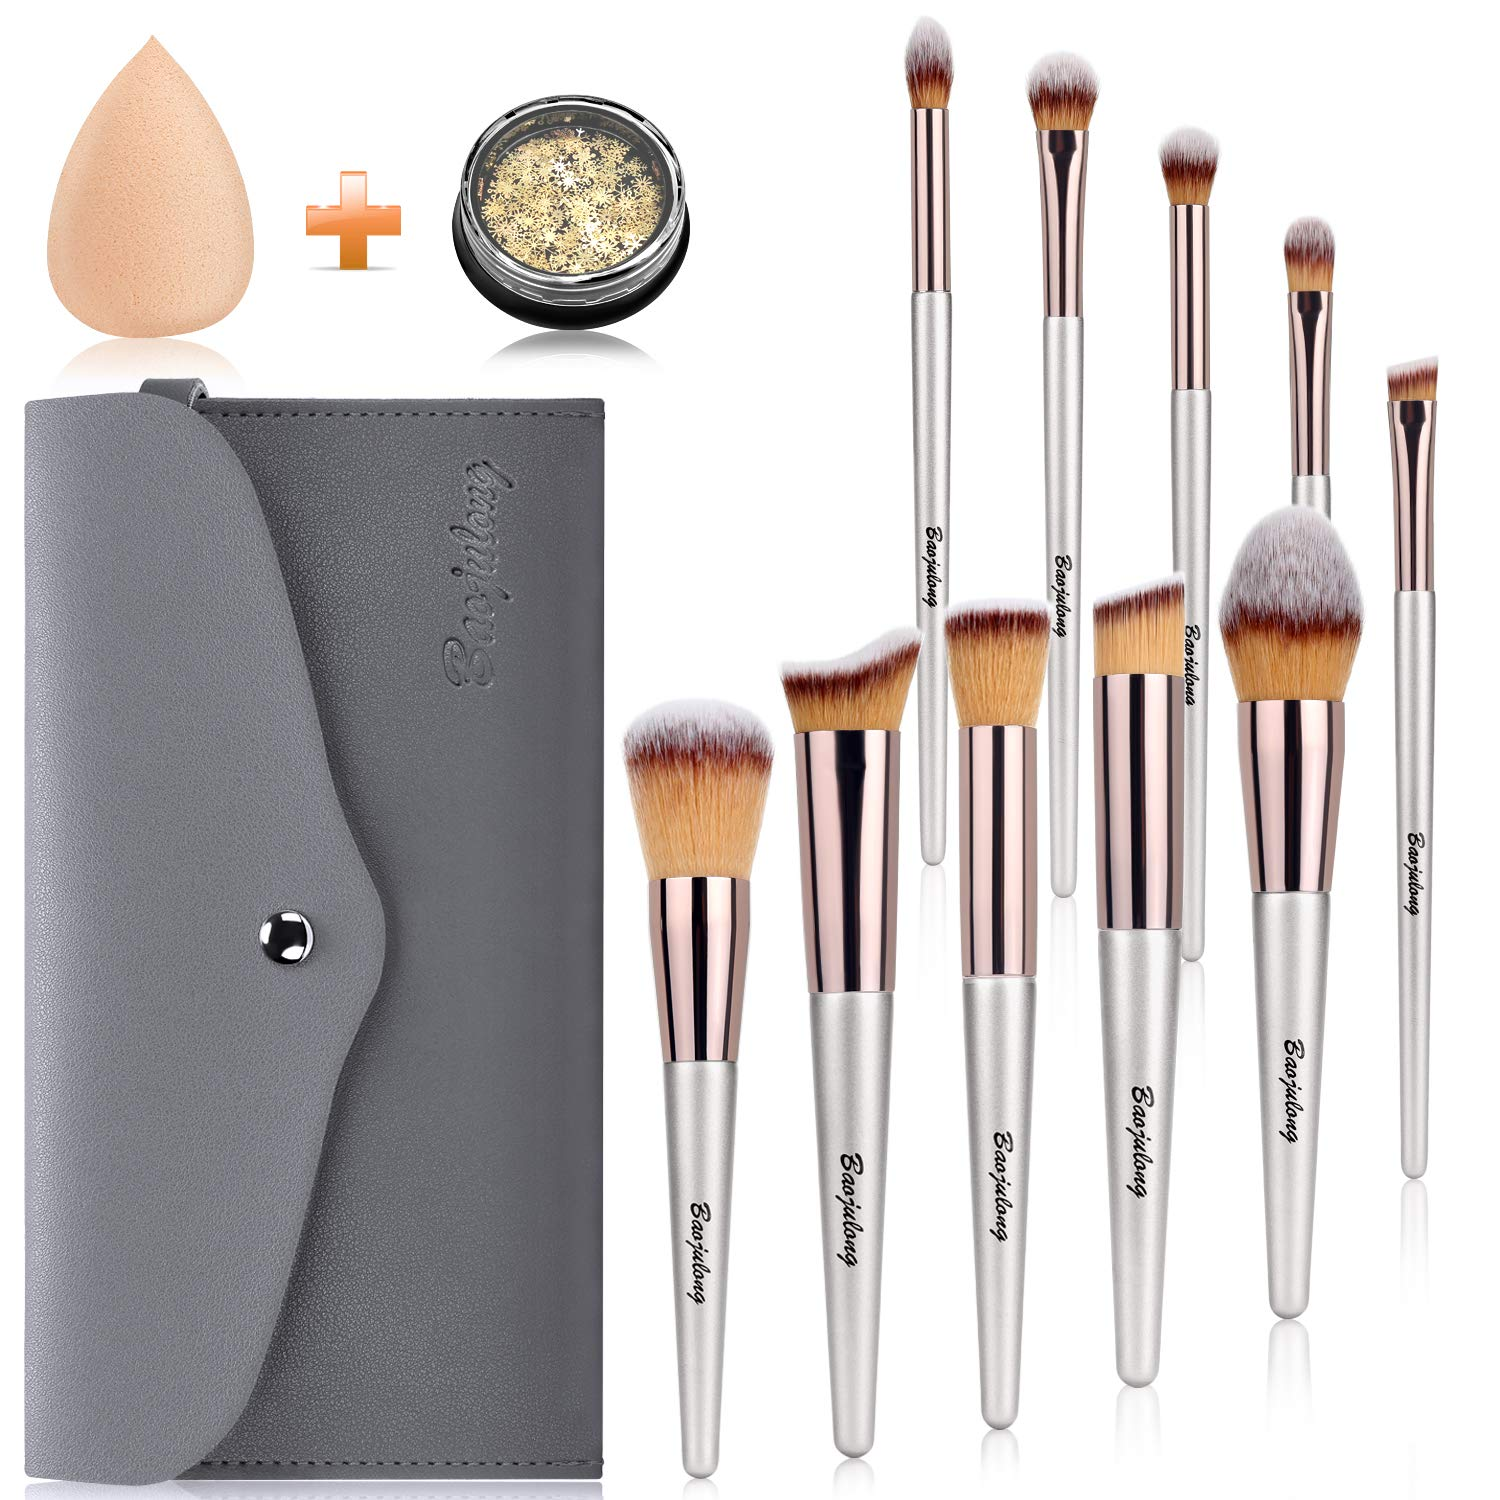 Baojulong Makeup Brushes 10 Pcs Makeup Brush Set Pro Foundation Blending Face Powder Blush Concealers Eye Shadows Make Up Brushes Kit with Cosmetic Bag Blender Sponger Snowflakes Beauty Tools Gifts